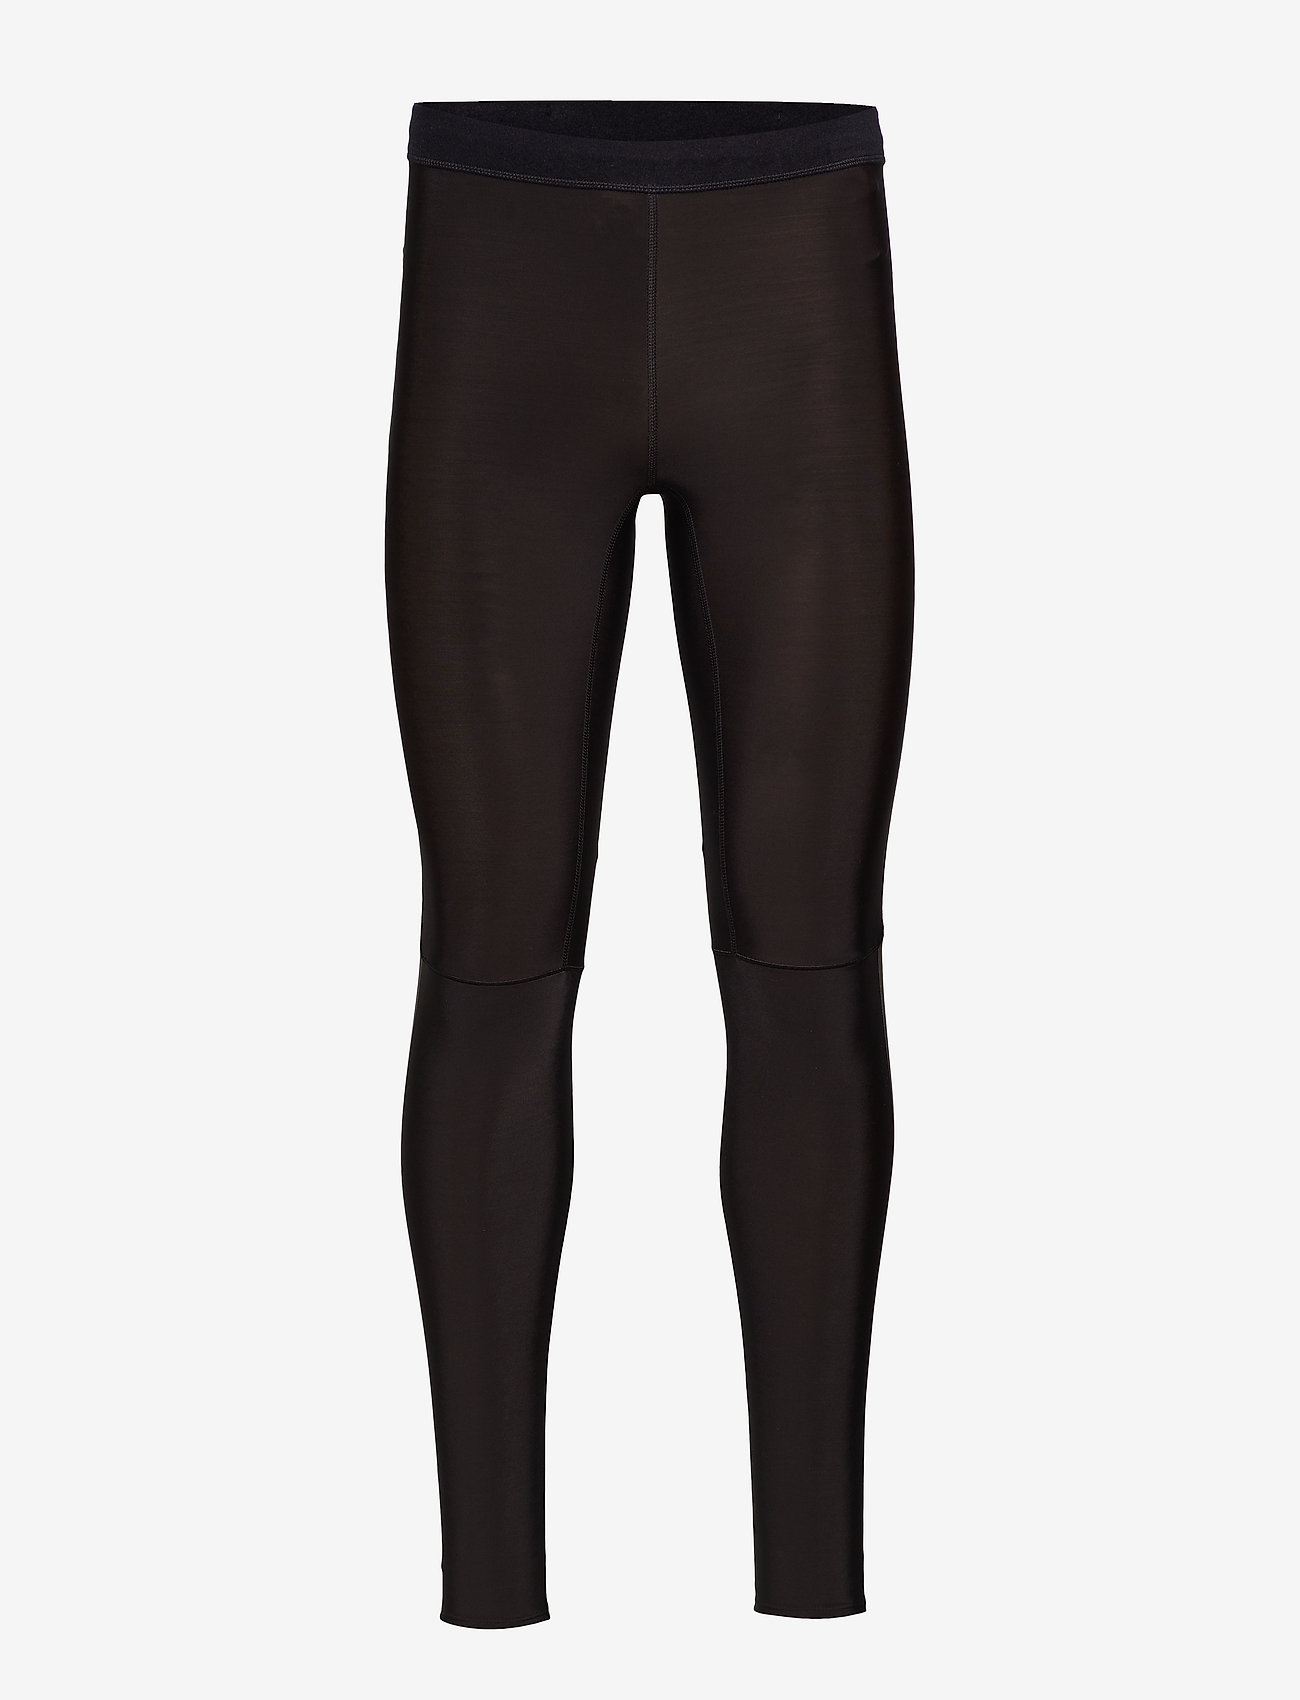 adidas Performance - SUPERNOVA TIGHT - running & training tights - black - 0